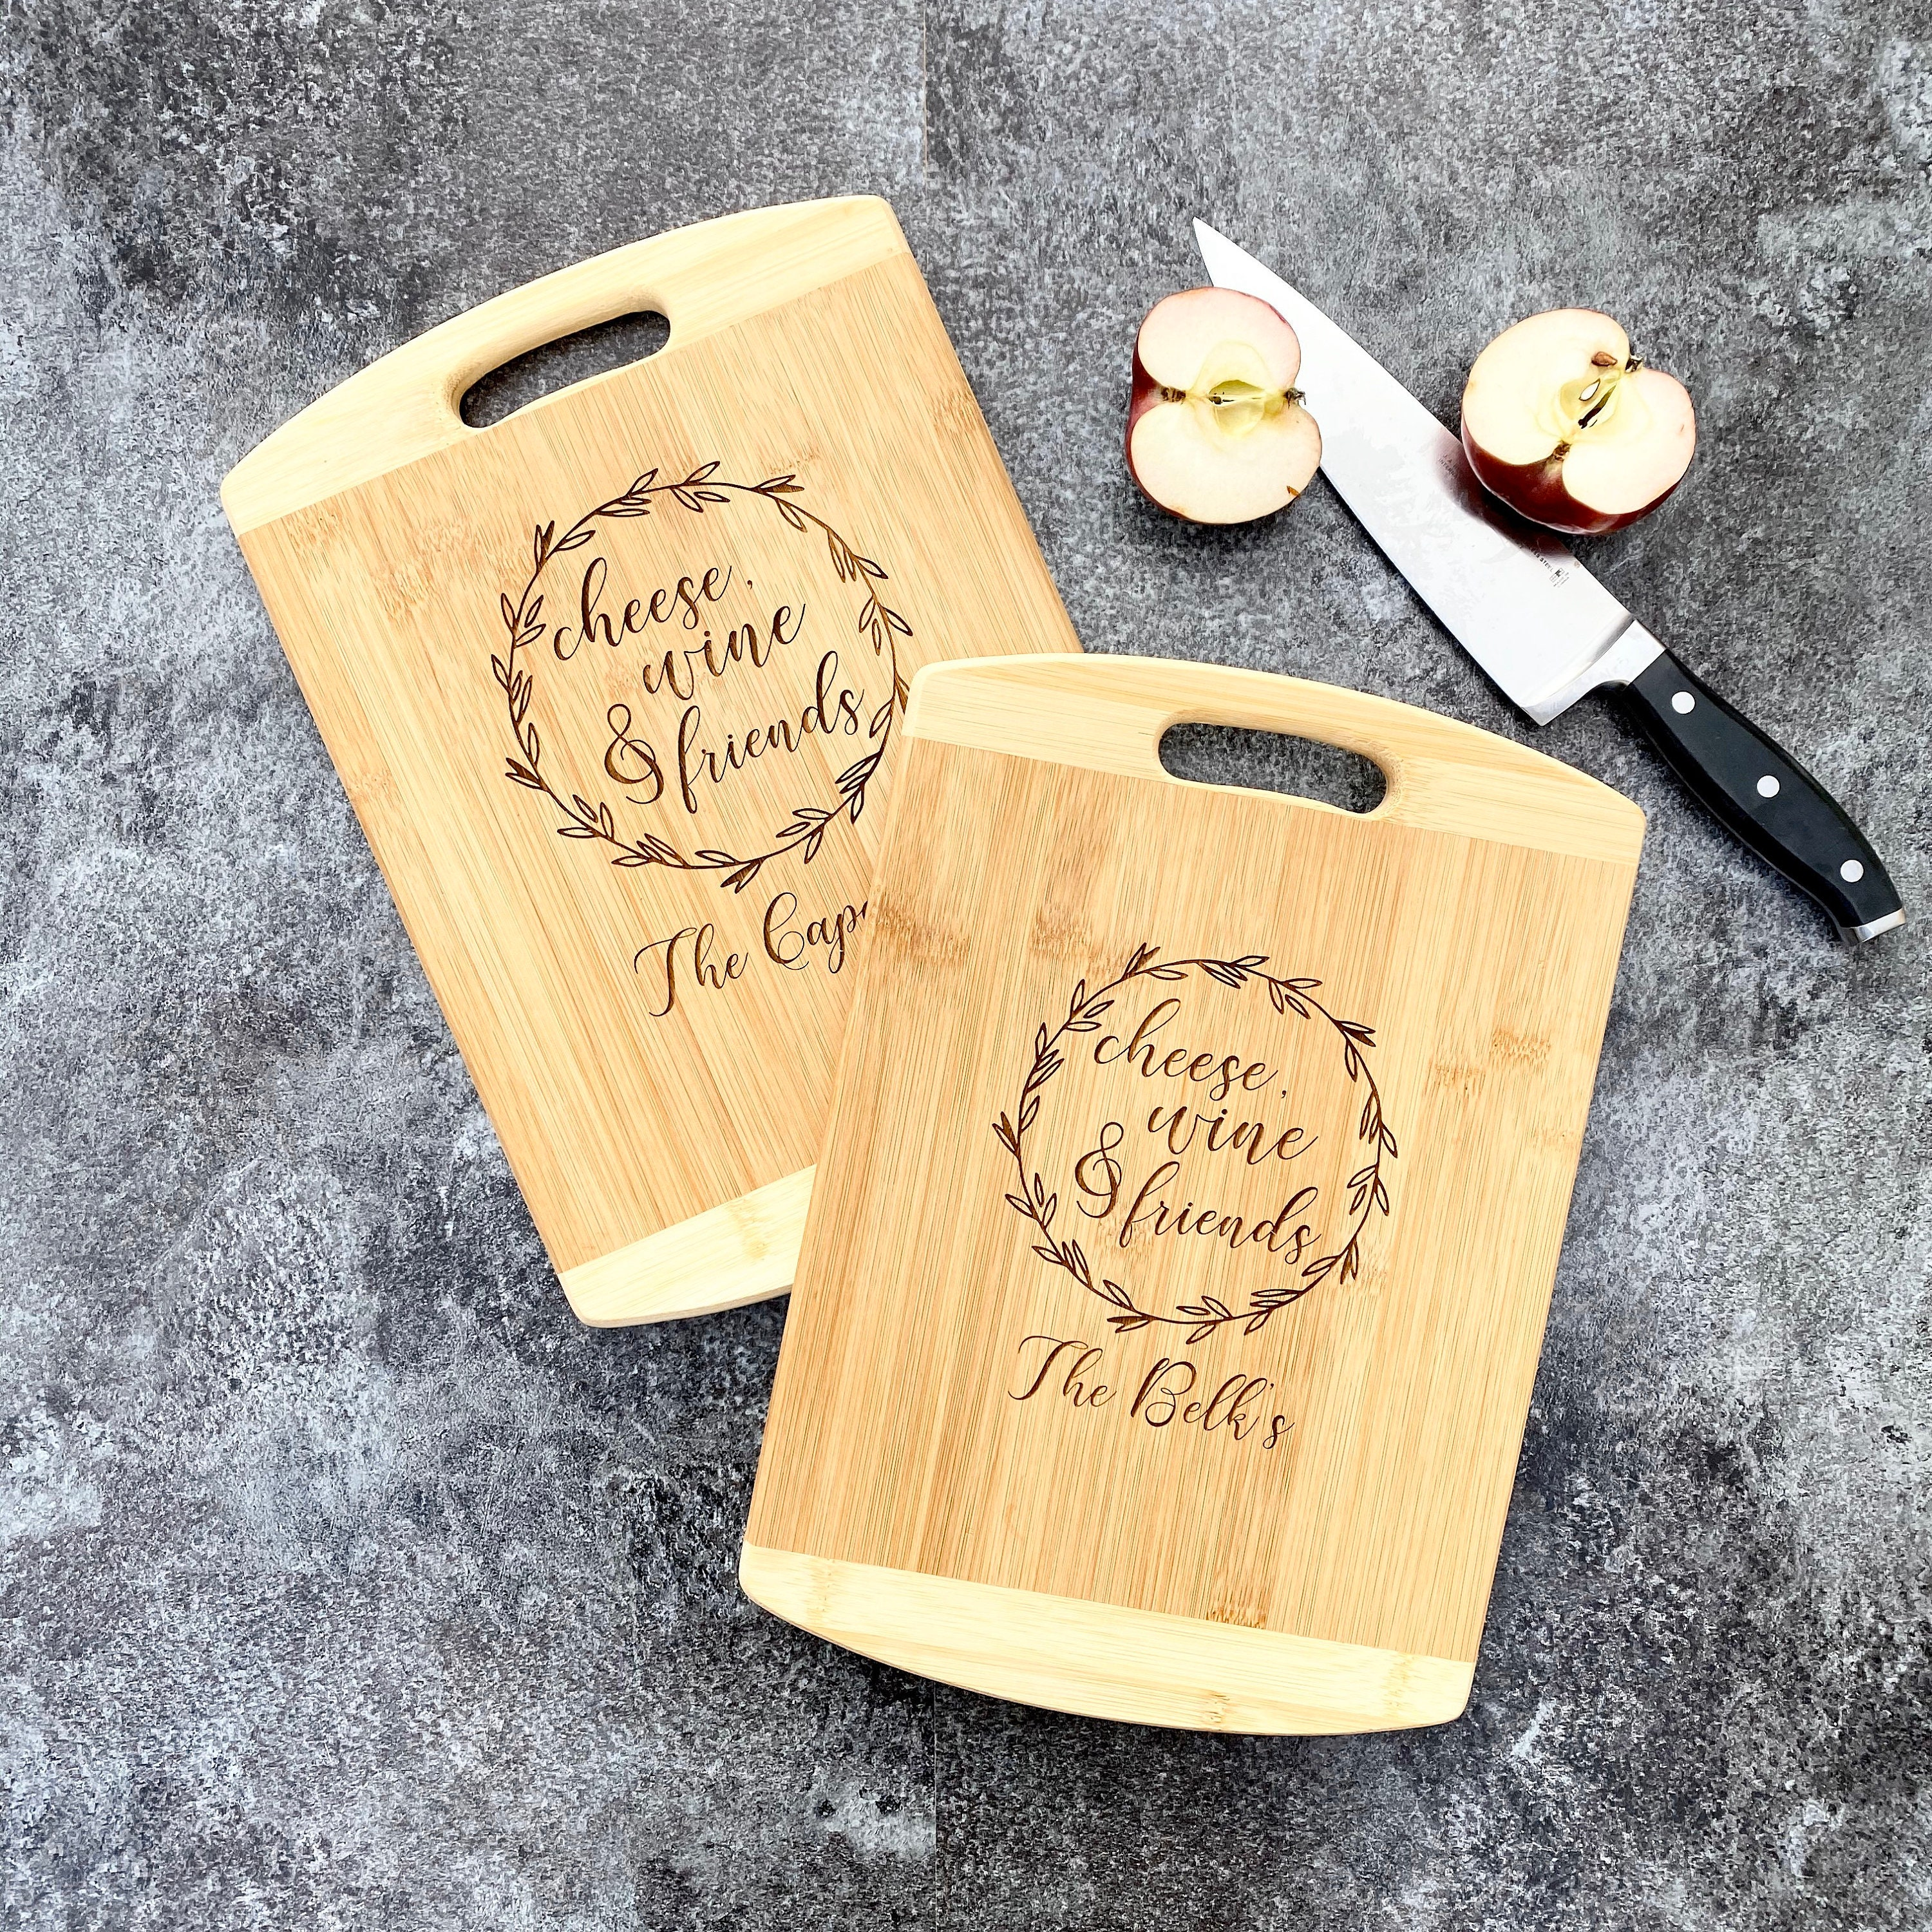 Wood Engraved Custom Cutting Board Anniversary Or Wedding Gift Personalized Cutting Board With Name